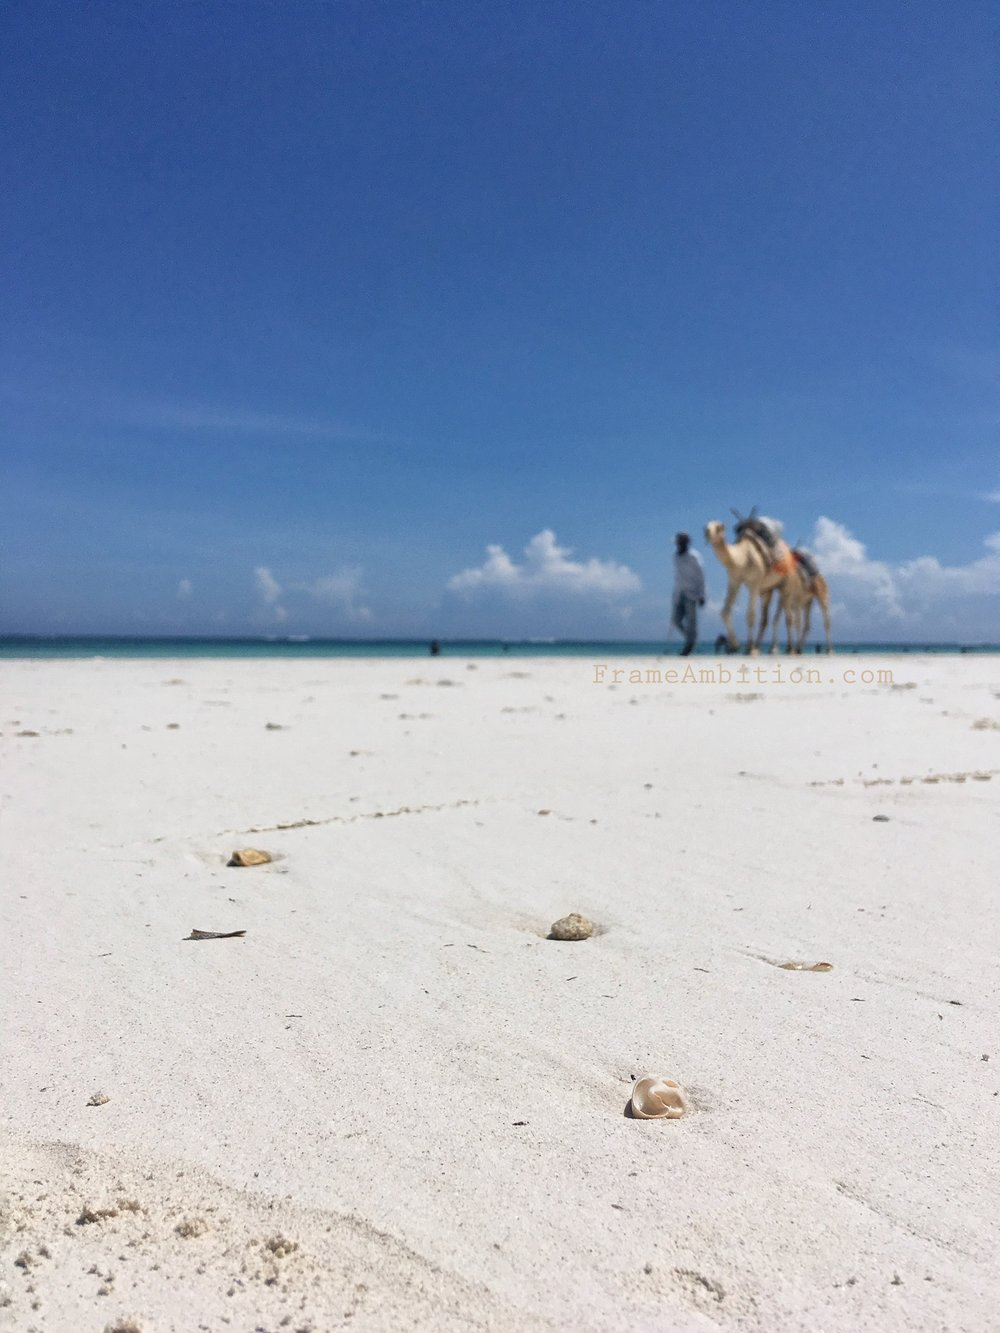 diani_beach_camels_frame_ambition.jpg